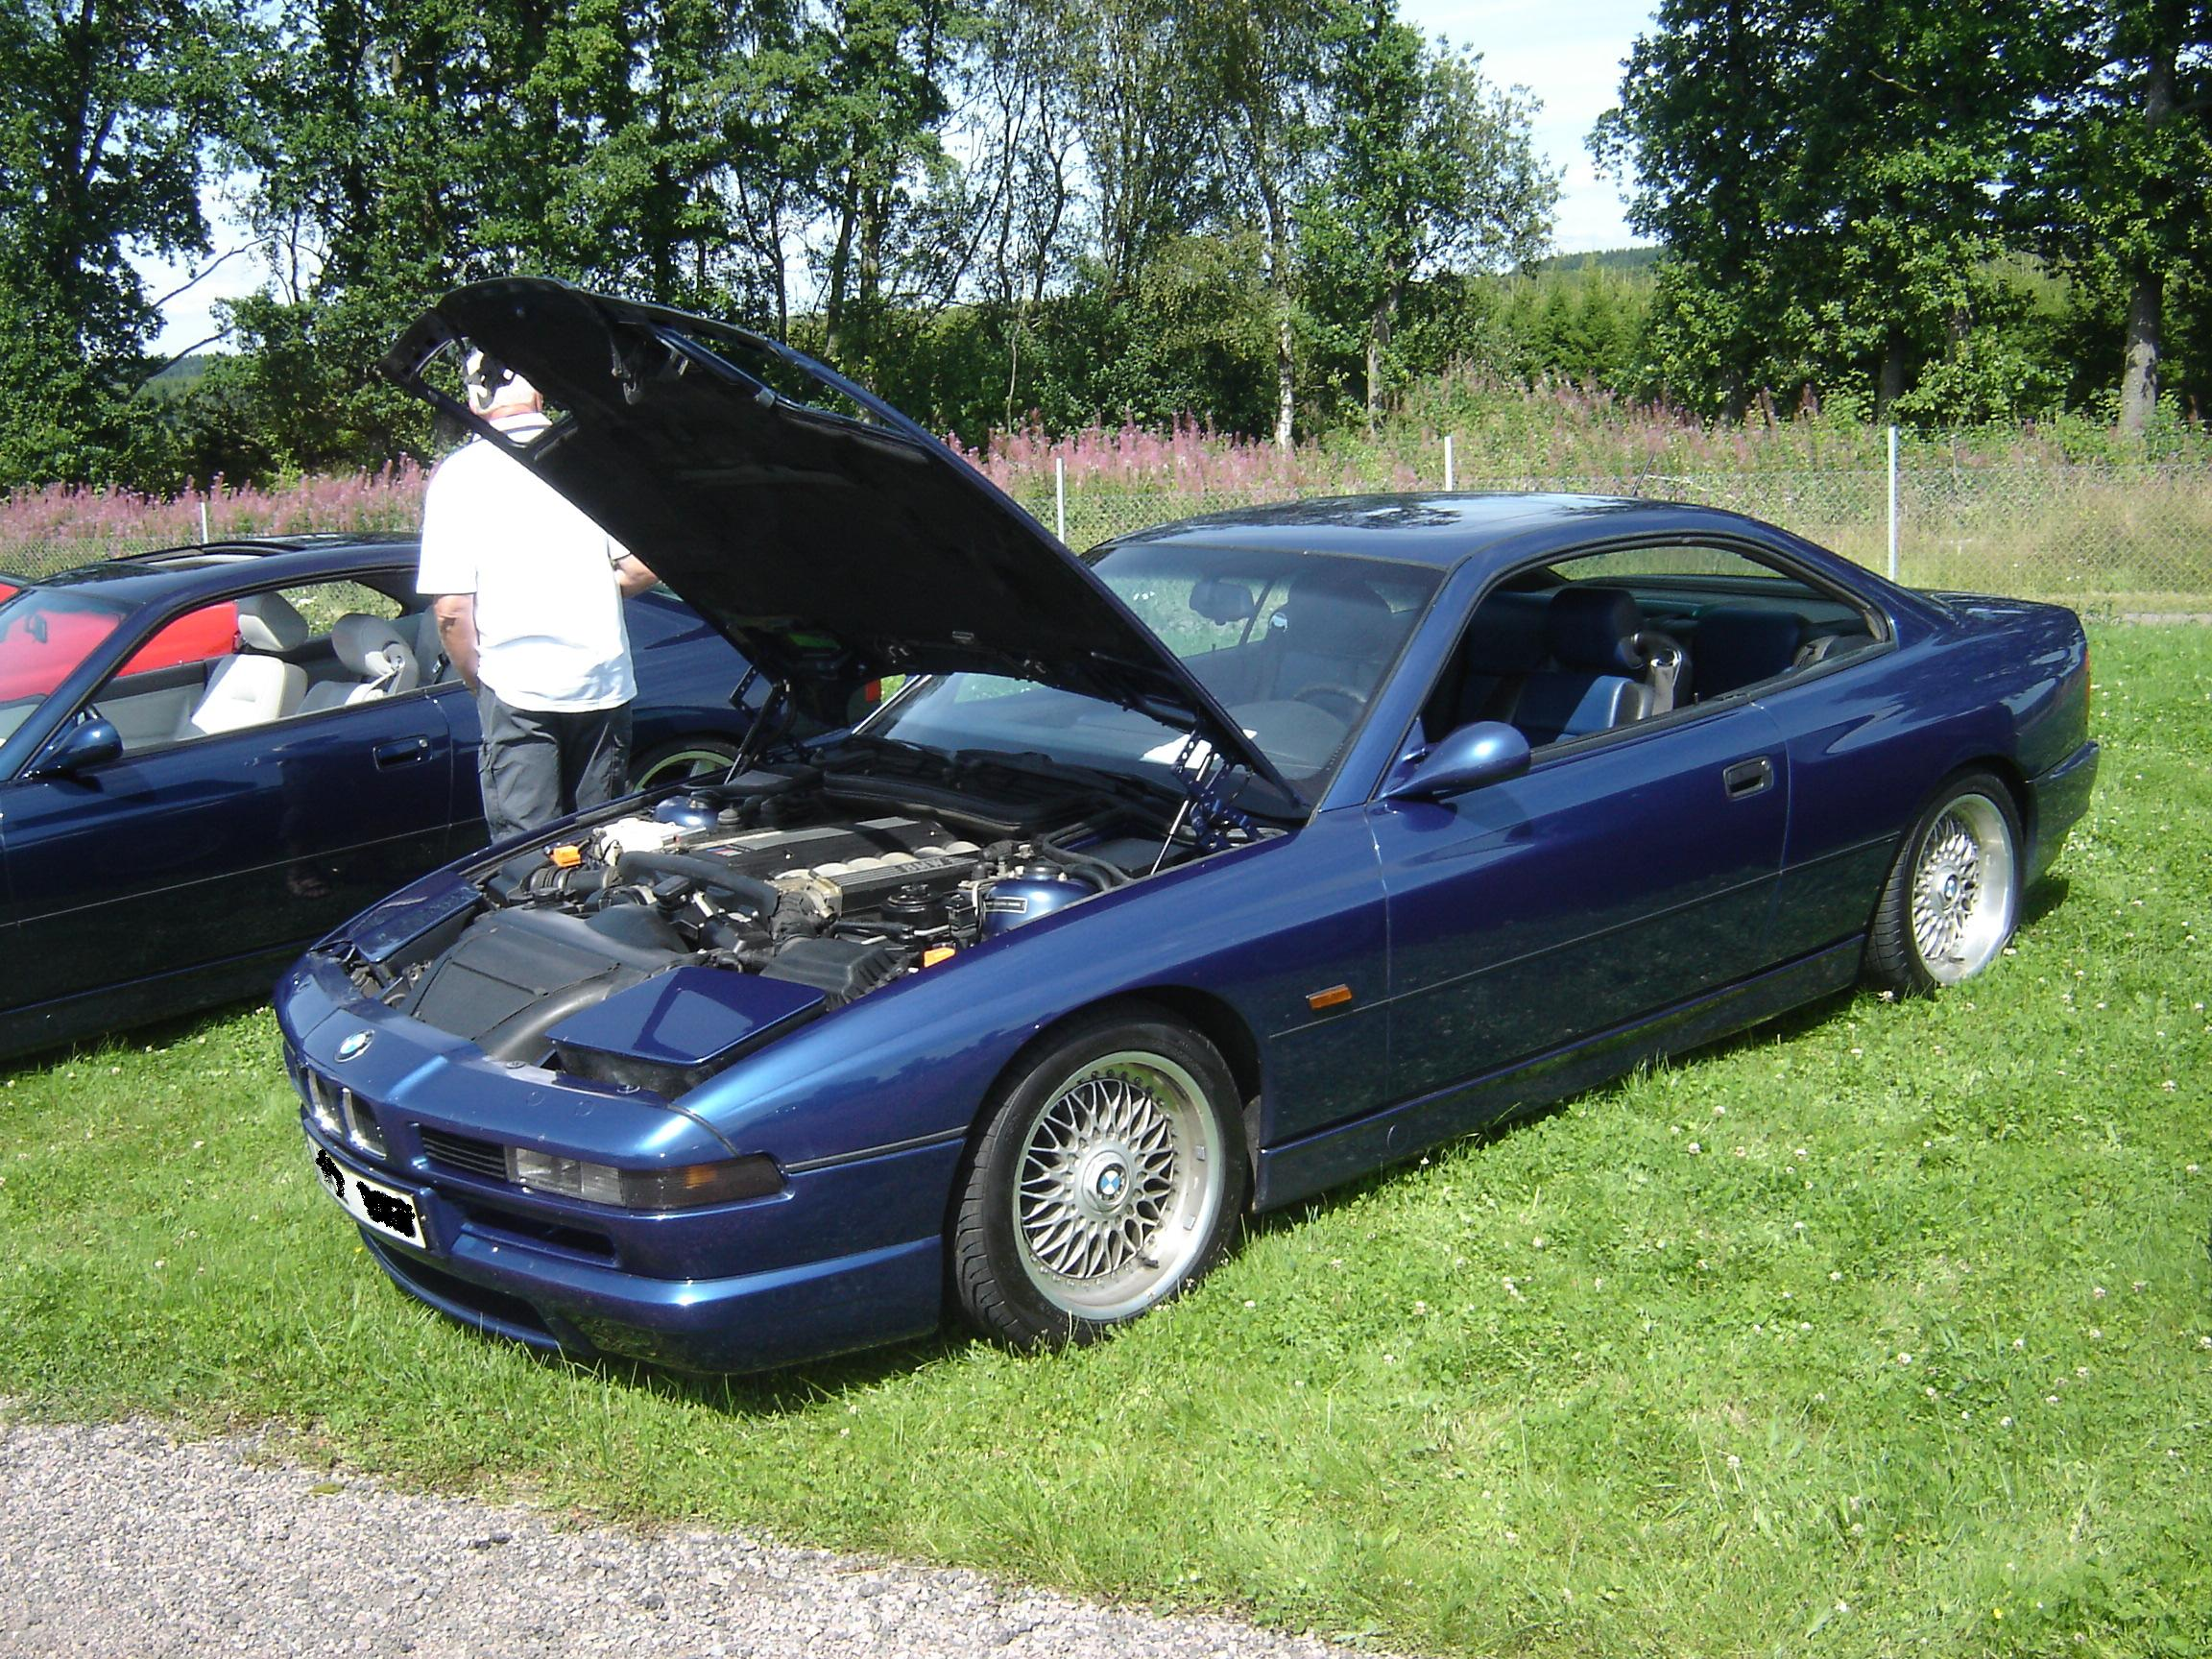 BMW 850 CSi | Flickr - Photo Sharing!